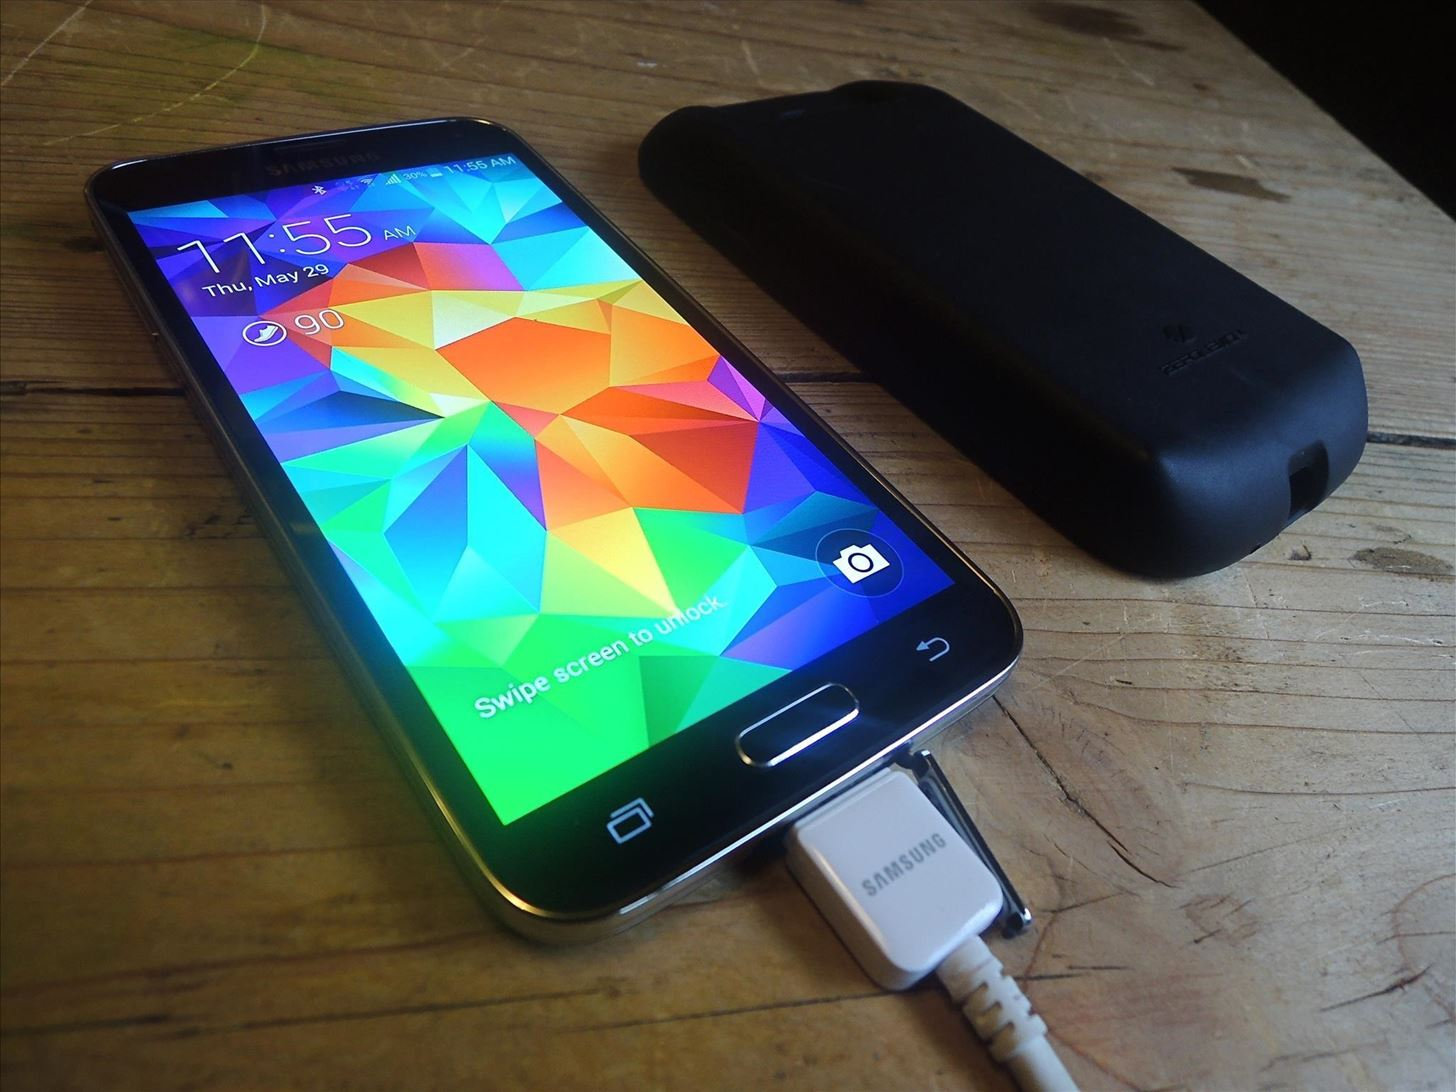 samsung galaxy s5. tip #4take off phone cover when charging samsung galaxy s5 h